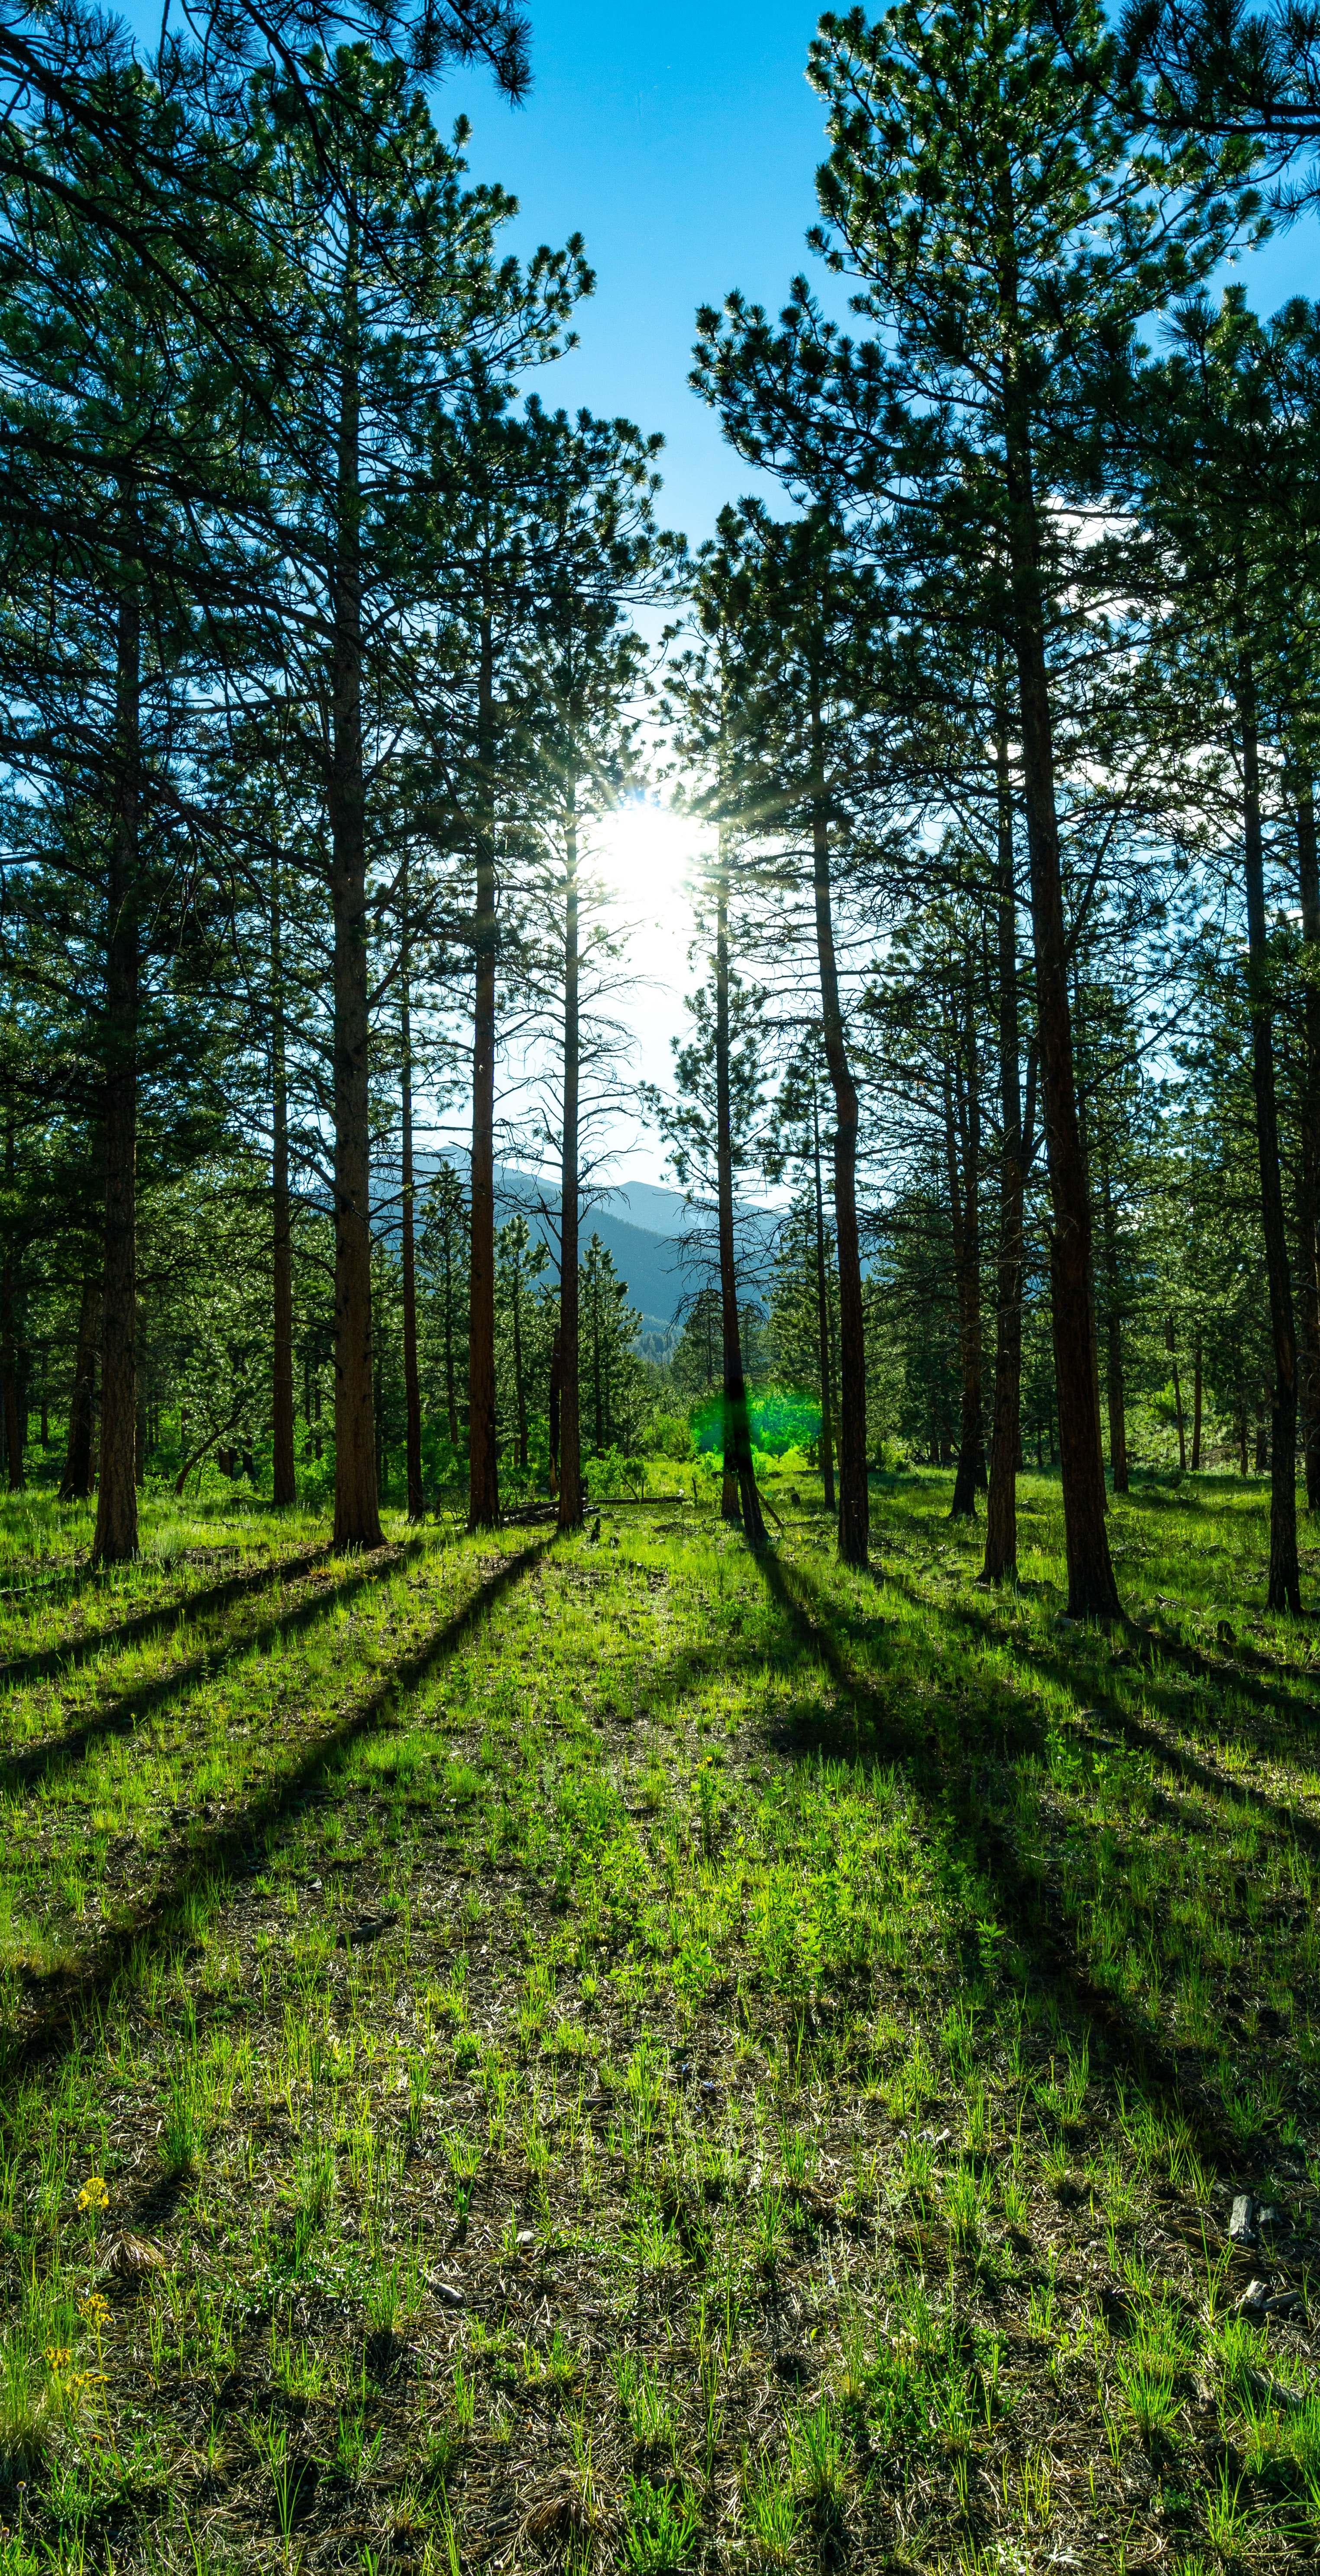 126952 download wallpaper Nature, Trees, Sunlight, Mountains, Landscape, Pine screensavers and pictures for free